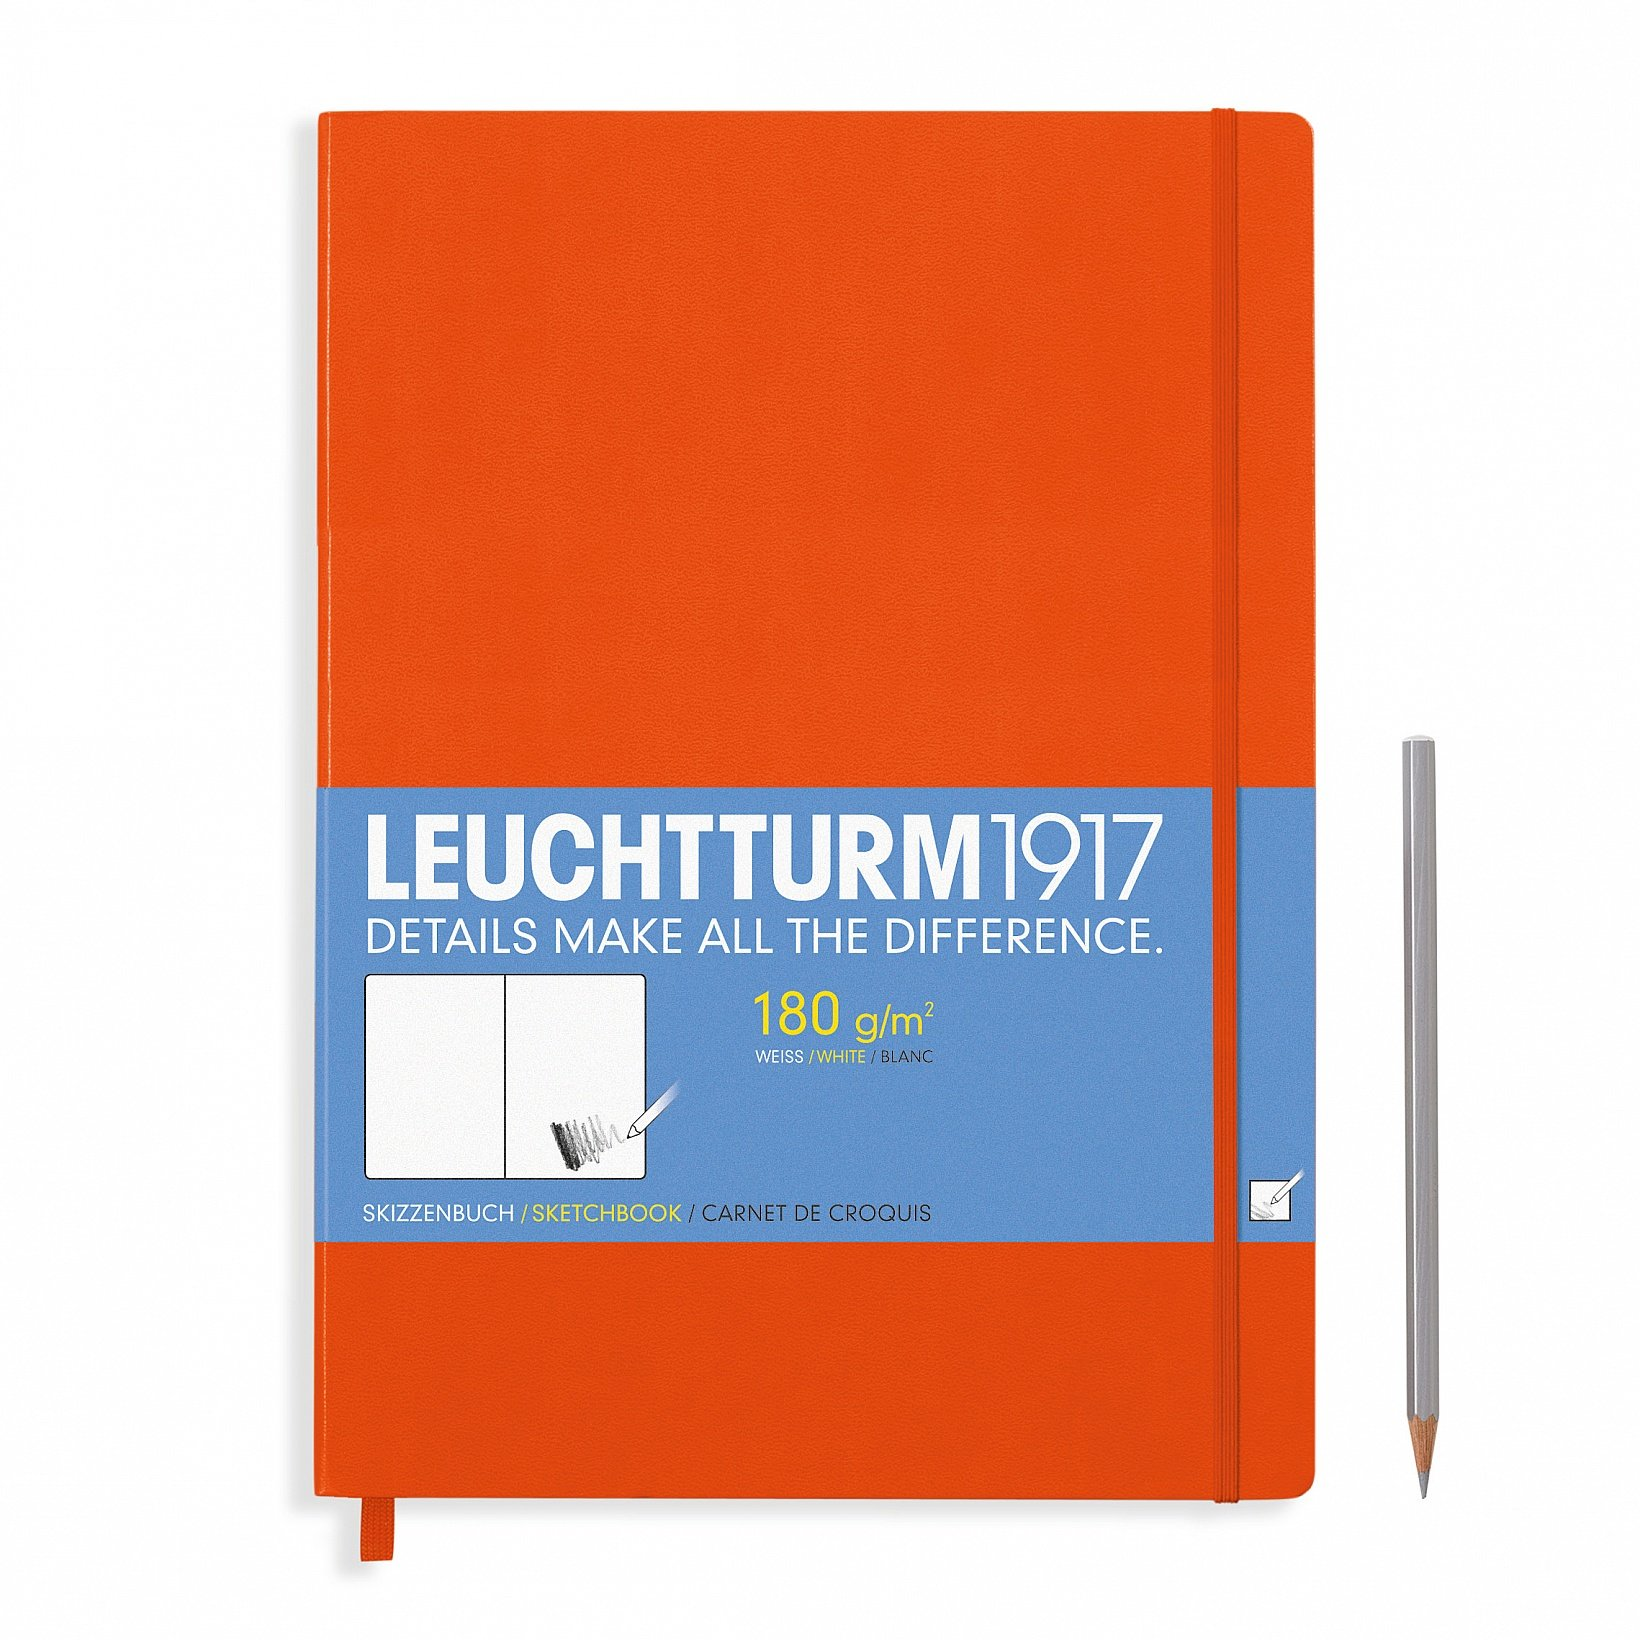 Leuchtturm1917 A4+ Master Hardcover Sketchbook, 8.85 X 12.5 inches, 96 Pages of 180g Brilliant White Plain Paper, Orange (345004) by LEUCHTTURM1917